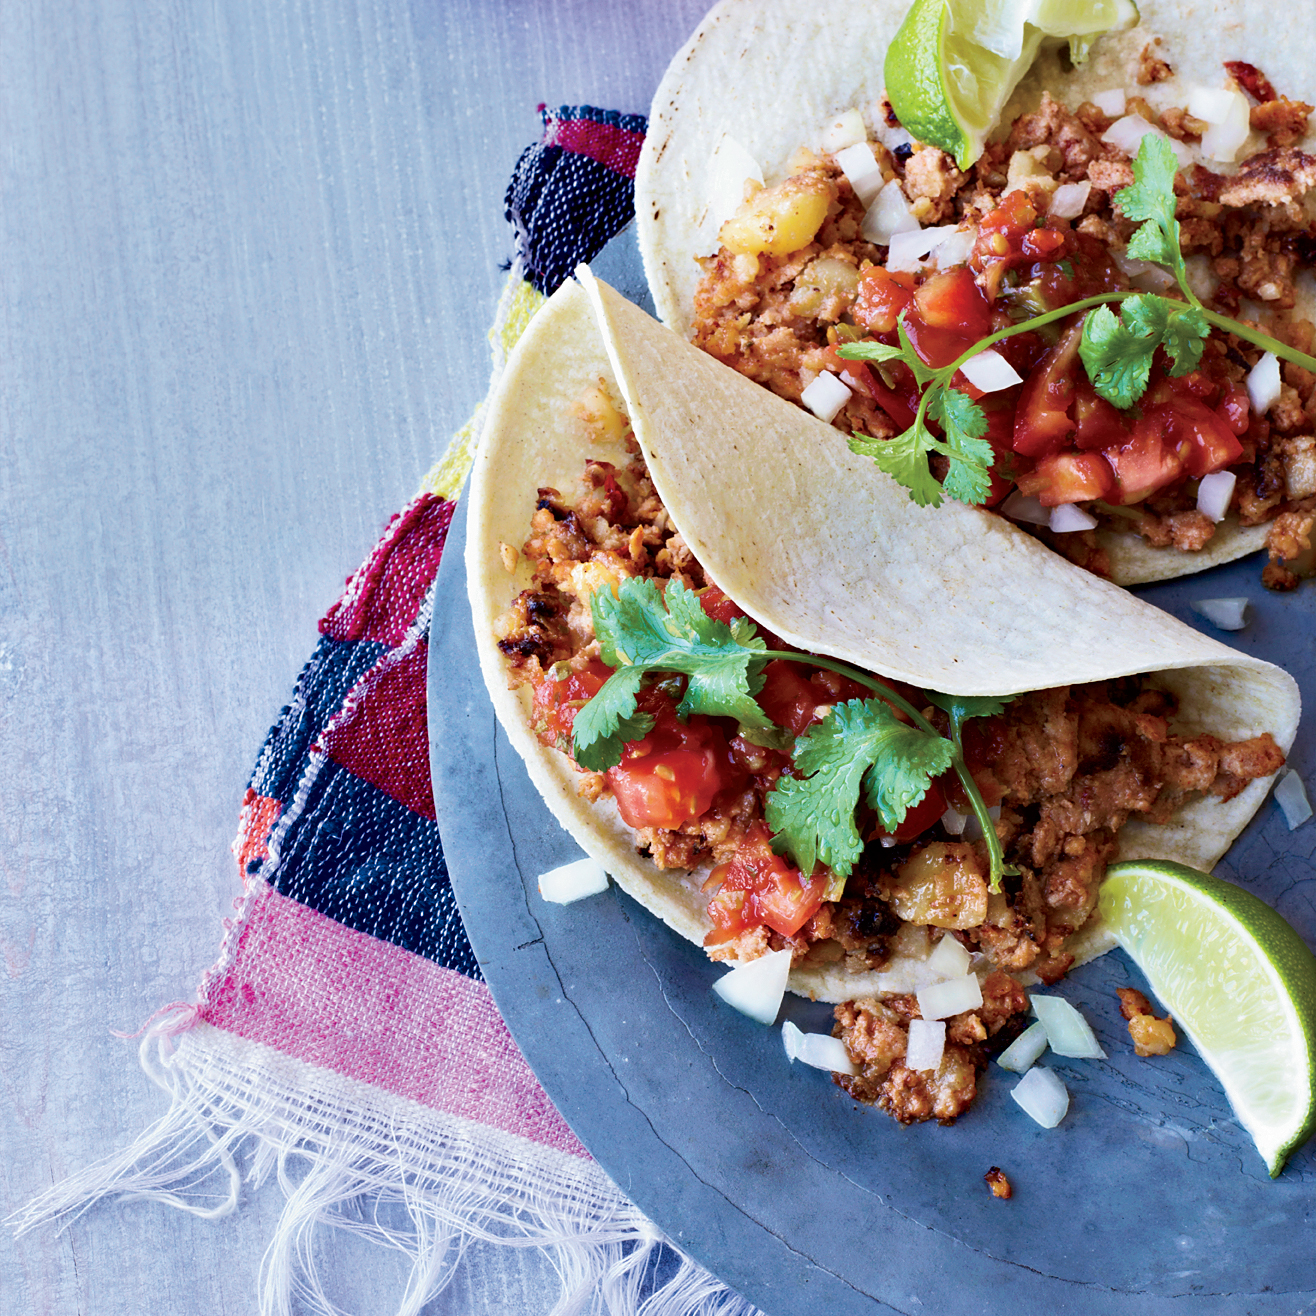 Mexican Recipes: Amazing Taco Recipes